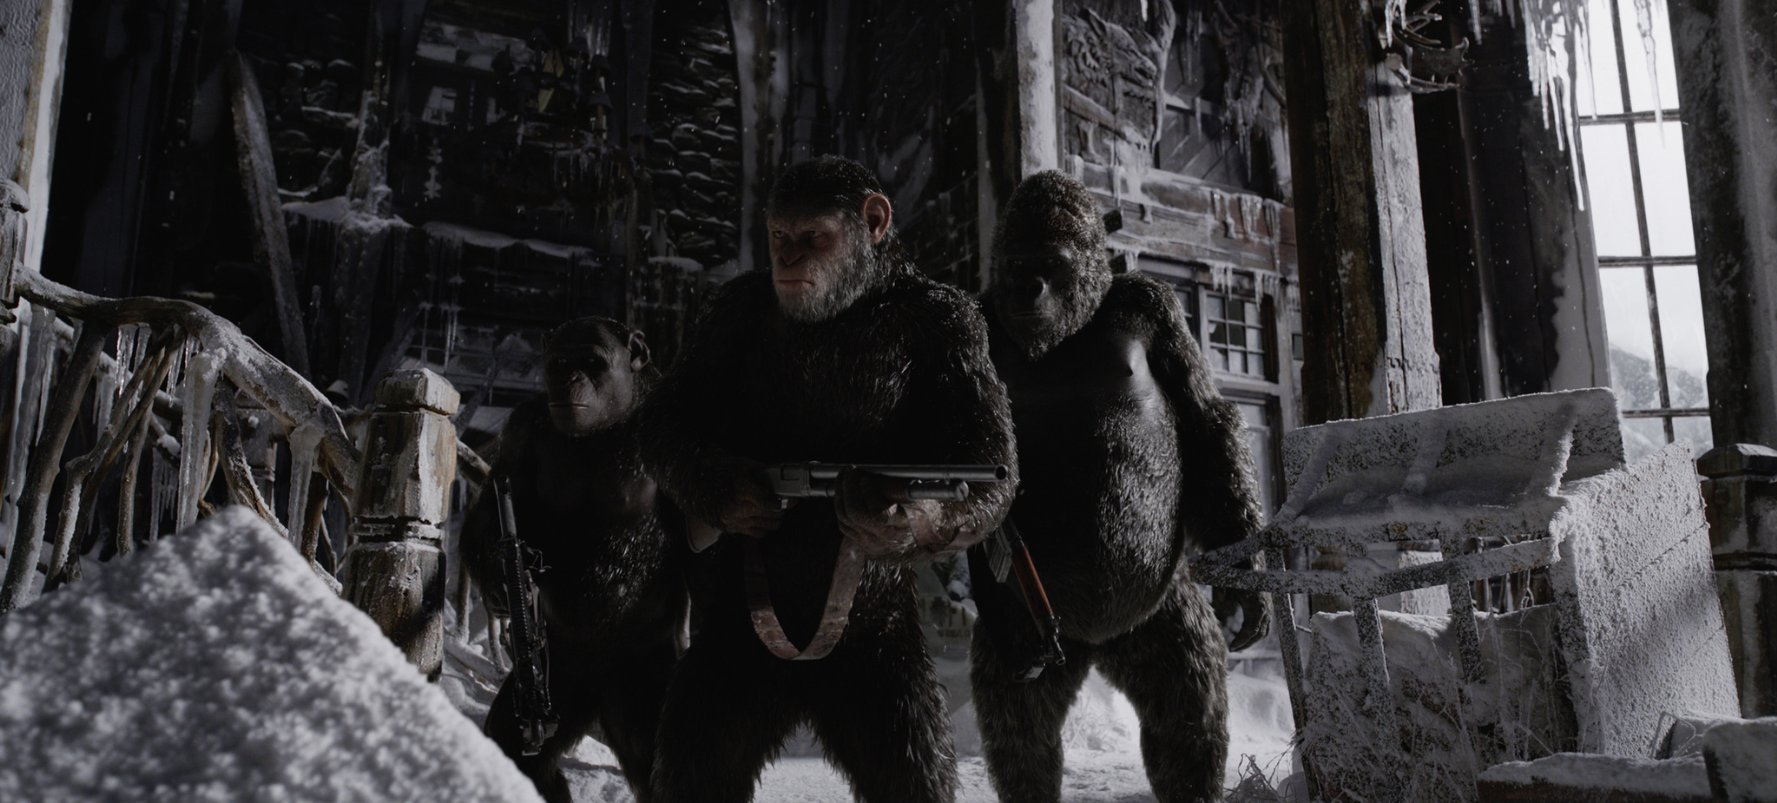 war-for-the-planet-of-the-apes-09dezembro2016-3